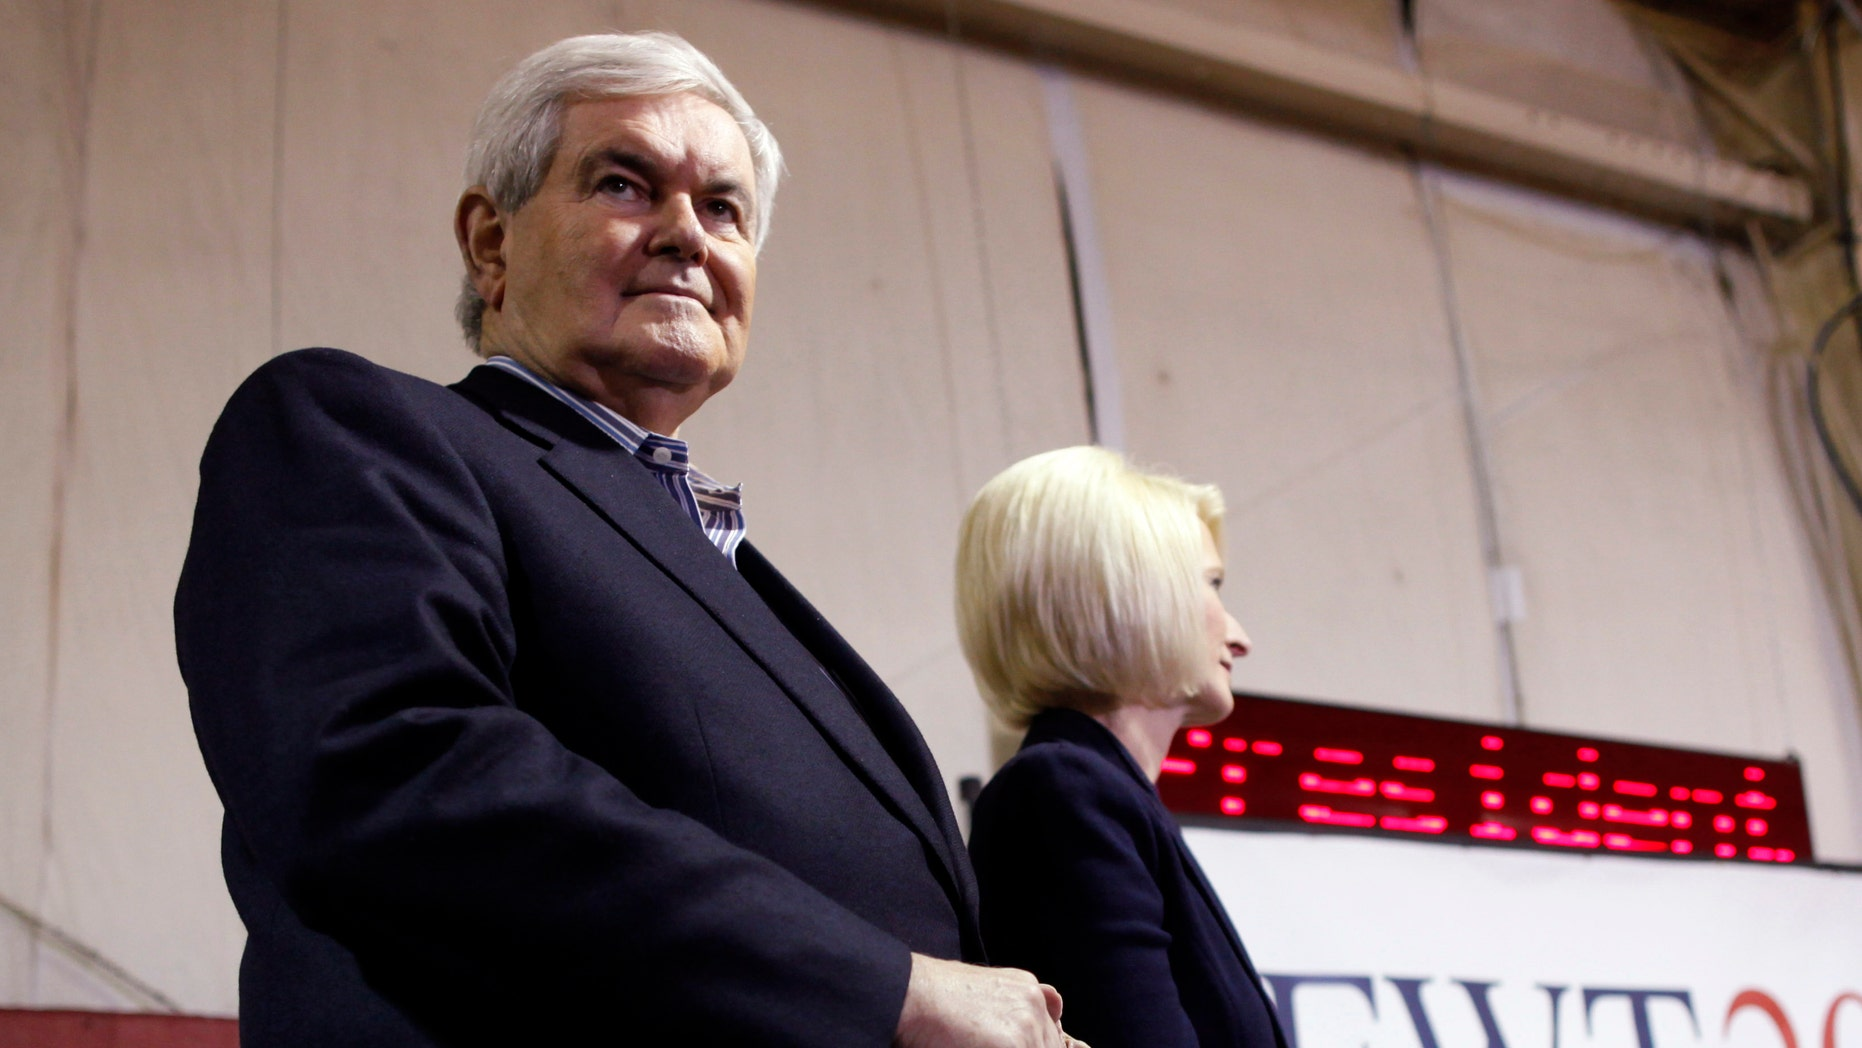 Republican presidential candidate former Speaker Newt Gingrich, stands with his wife Callista as he is introduced at his campaign headquarters in Davenport, Iowa, Monday, Jan. 2, 2012. (AP Photo/Charles Dharapak)